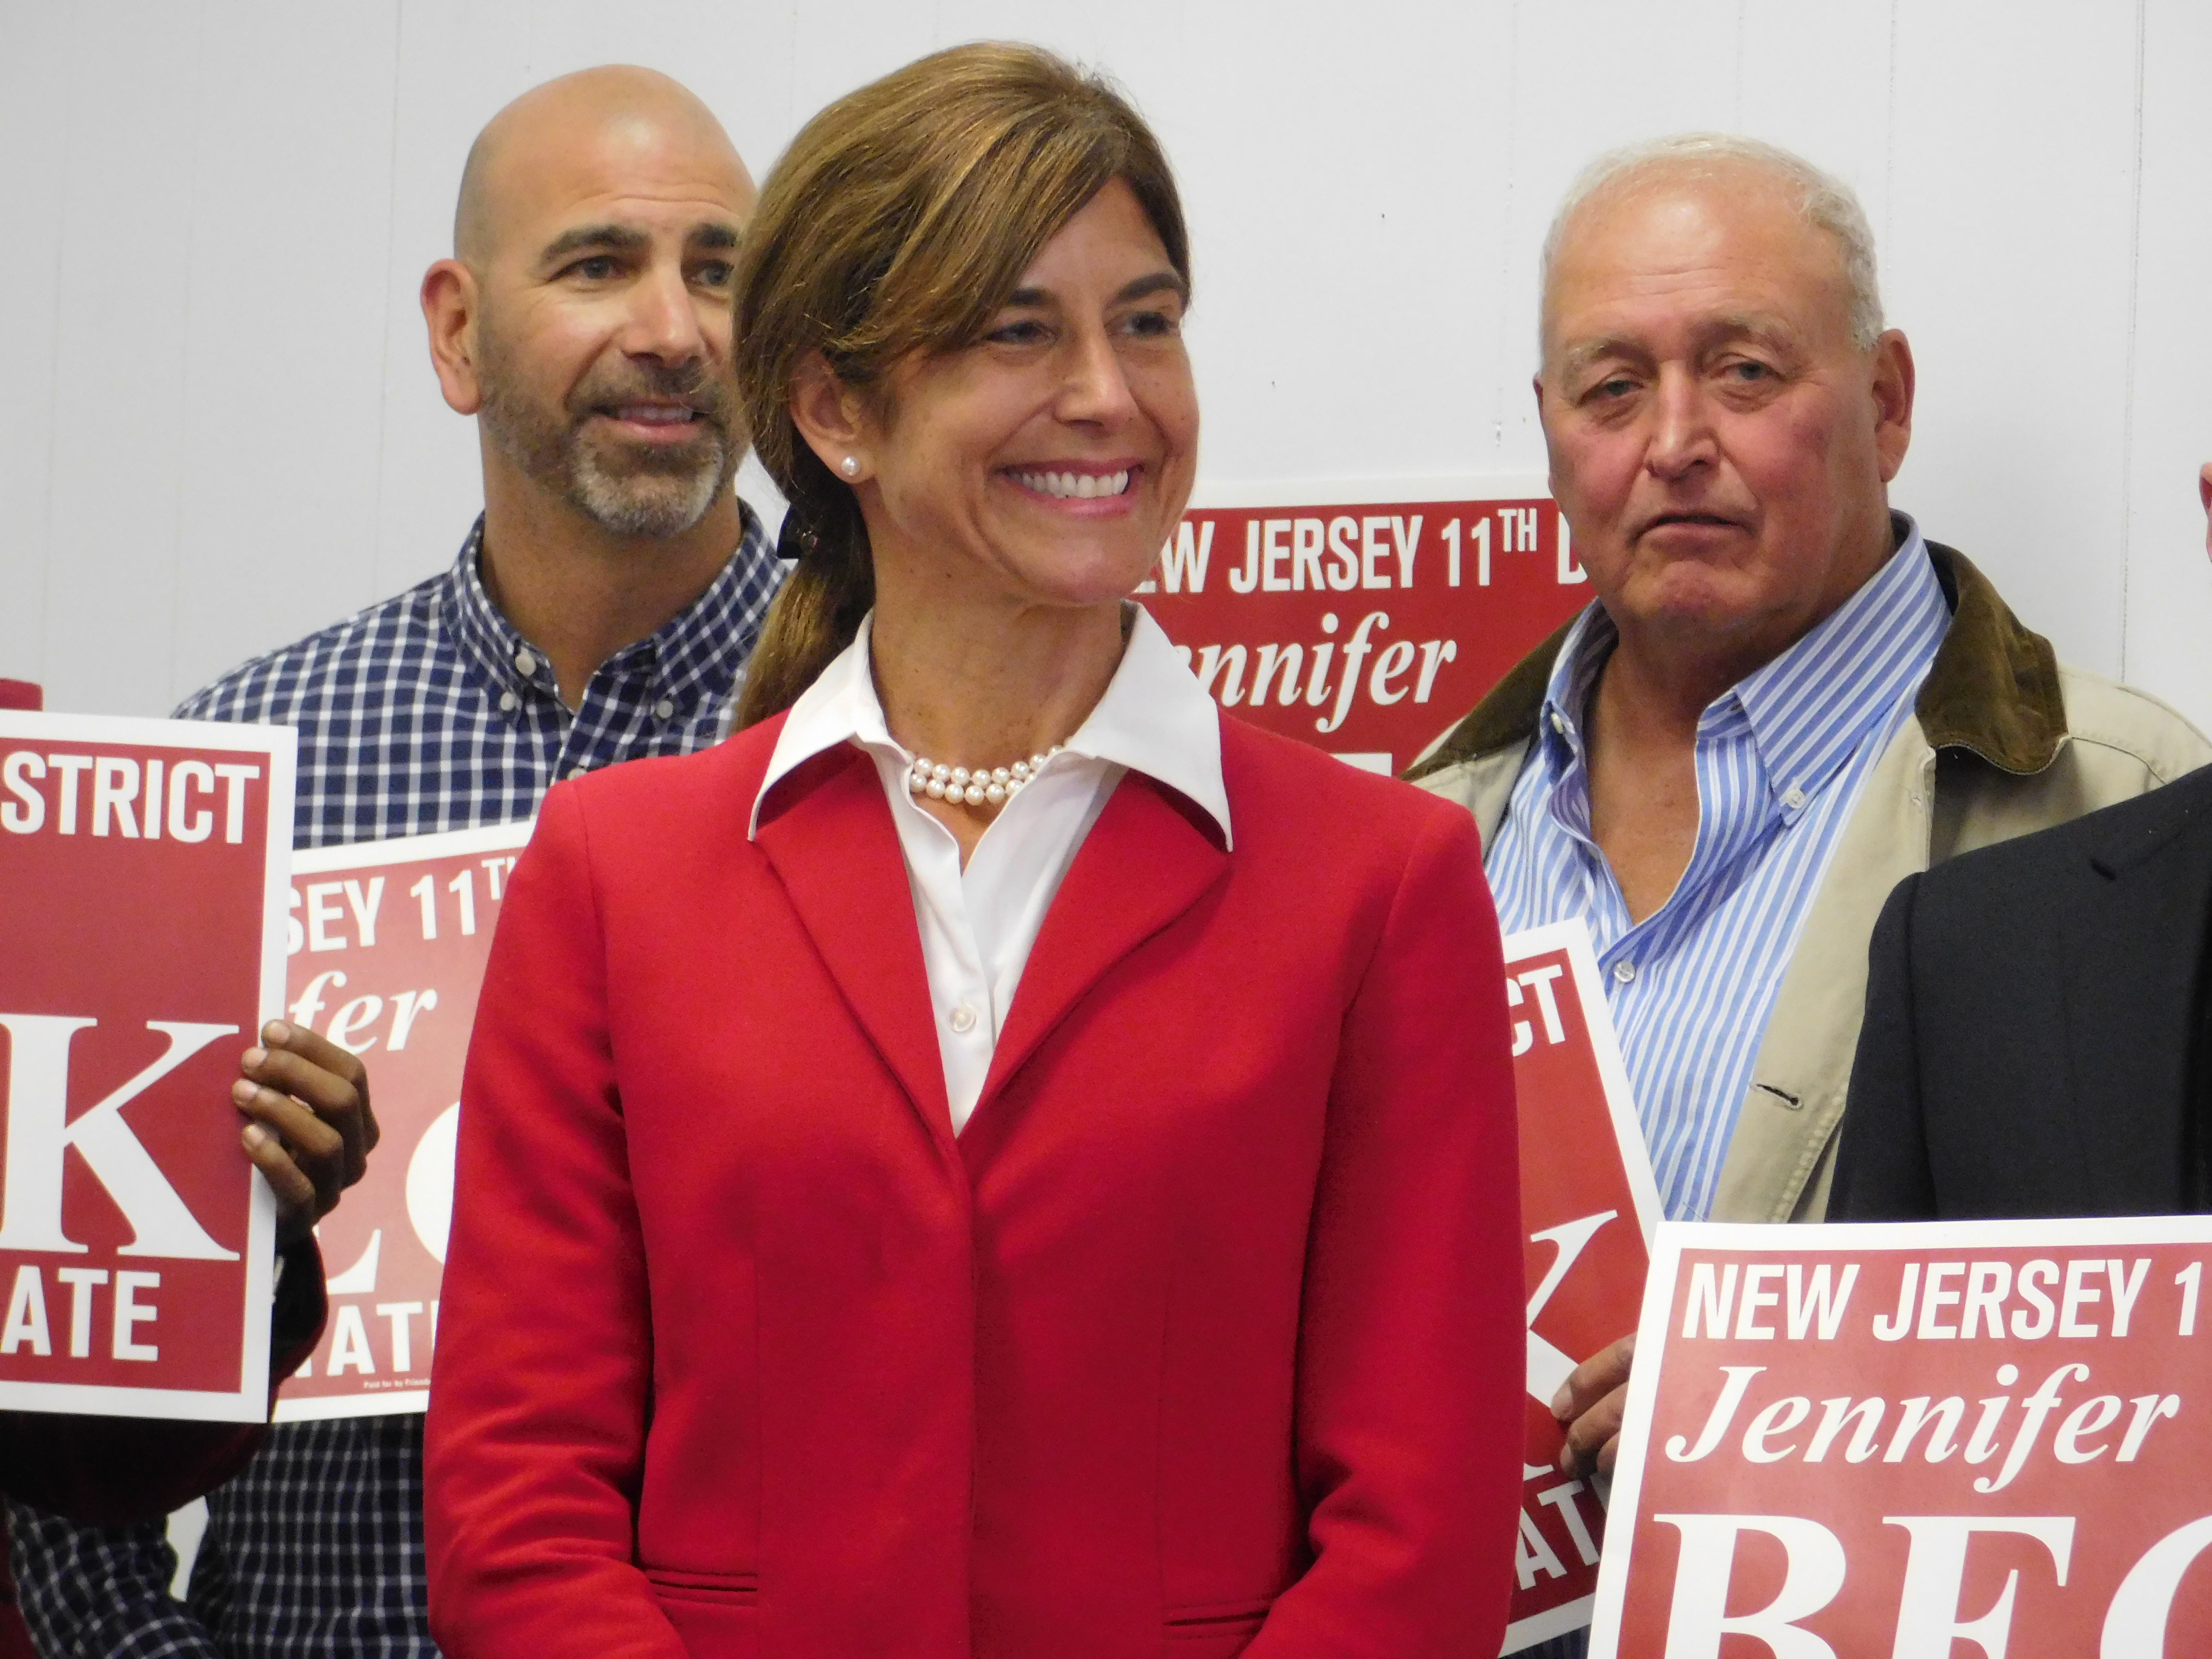 Beck announced she would be pursuing re-election.